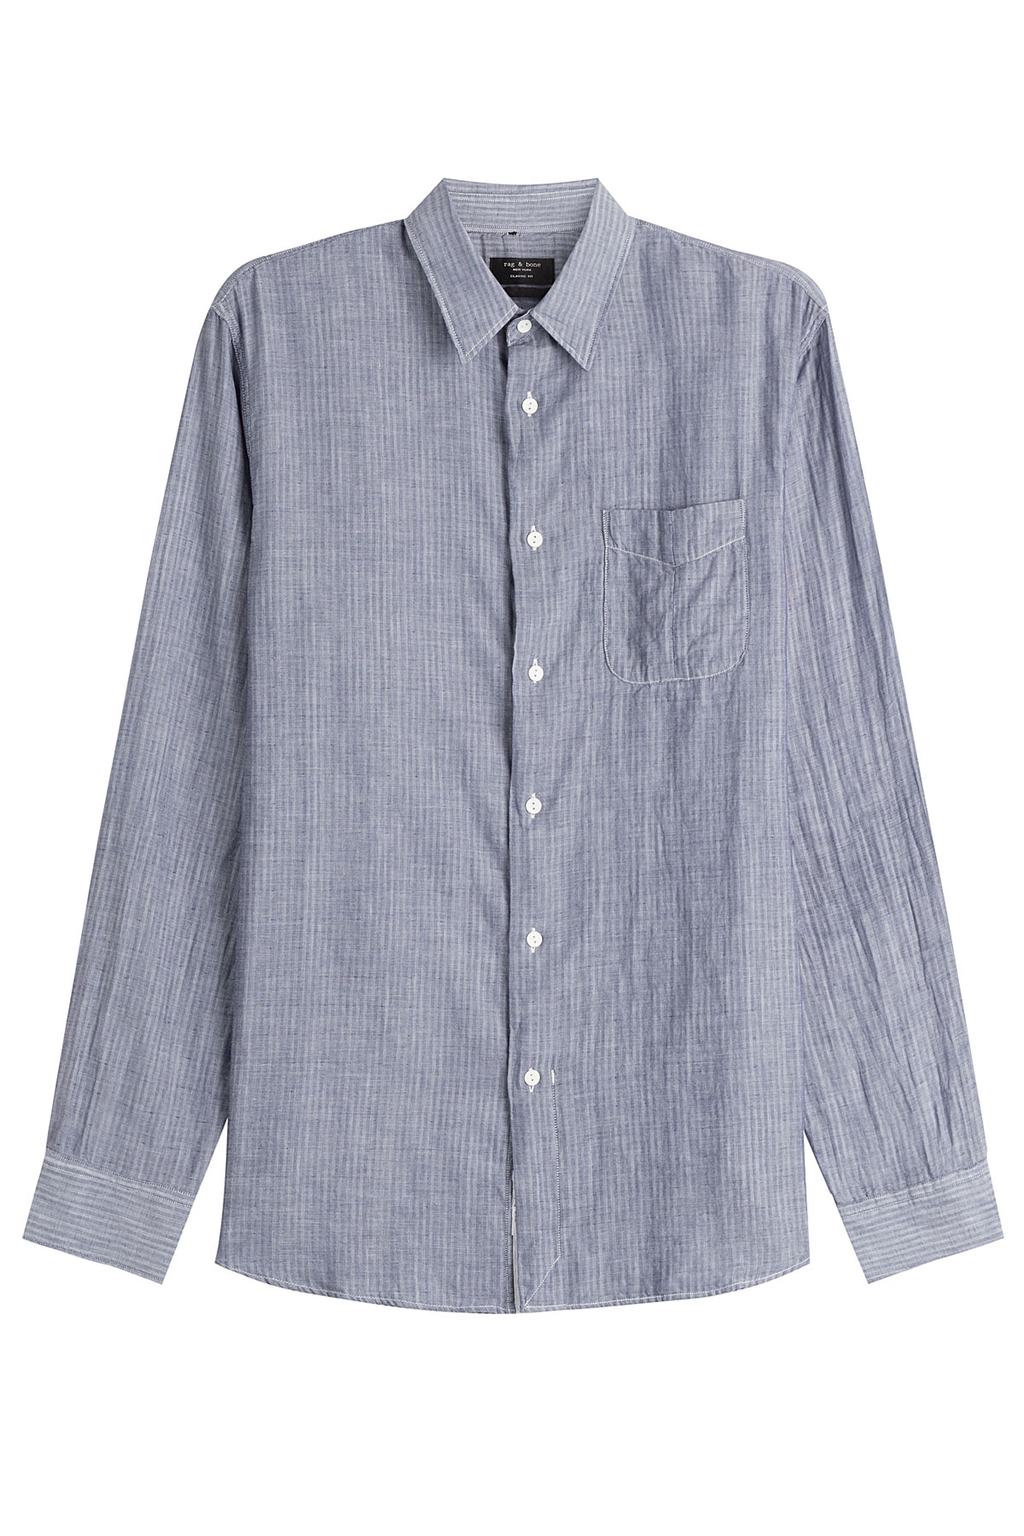 Cotton Shirt - neckline: shirt collar/peter pan/zip with opening; style: shirt; predominant colour: mid grey; occasions: casual, creative work; length: standard; fibres: cotton - 100%; fit: body skimming; sleeve length: long sleeve; sleeve style: standard; texture group: cotton feel fabrics; pattern type: fabric; pattern size: standard; pattern: patterned/print; season: s/s 2016; wardrobe: highlight